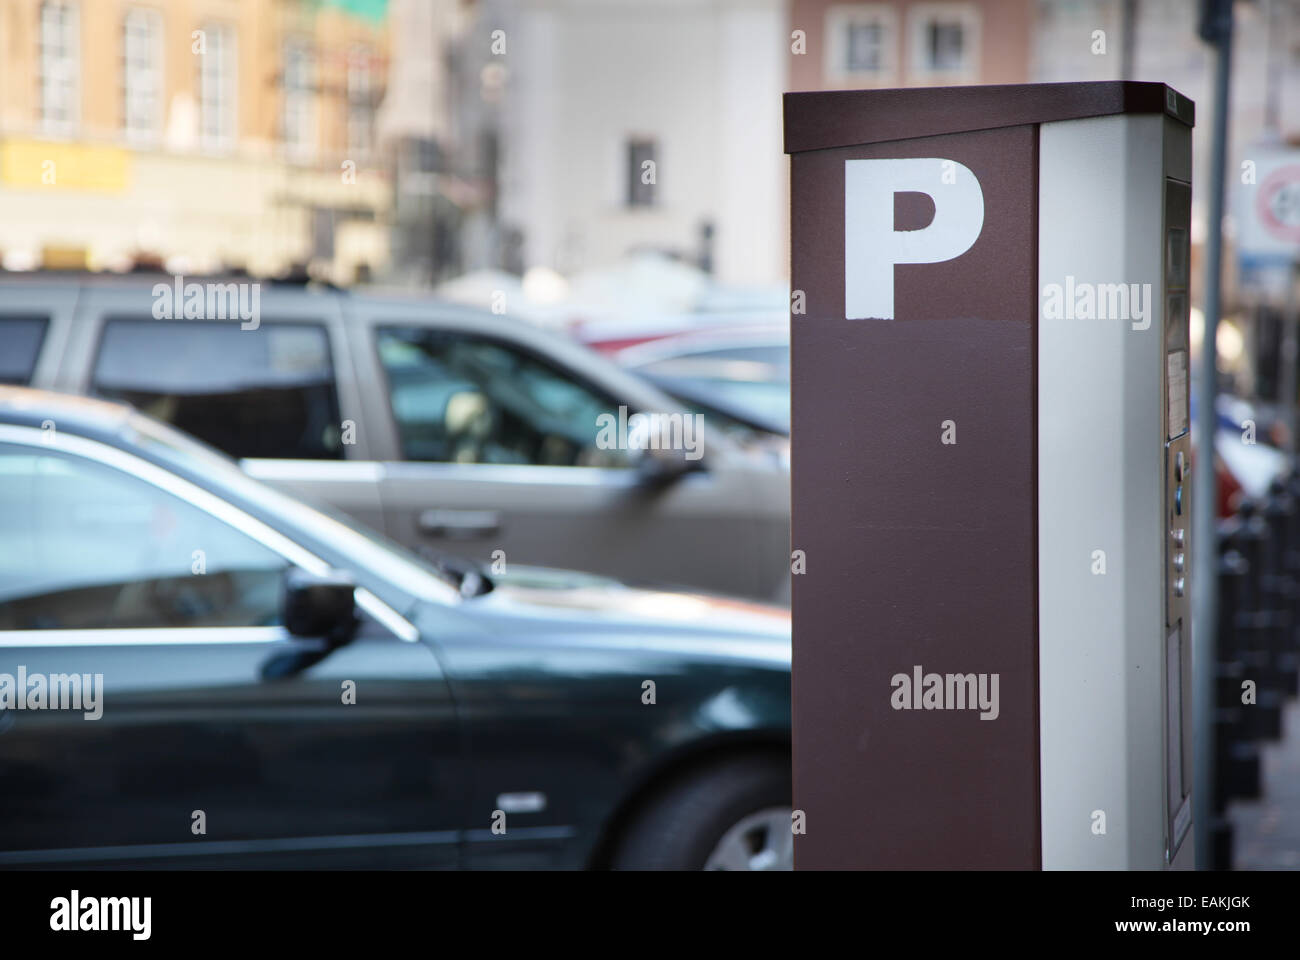 Parking meter in the town. Blurred cars on the background. - Stock Image